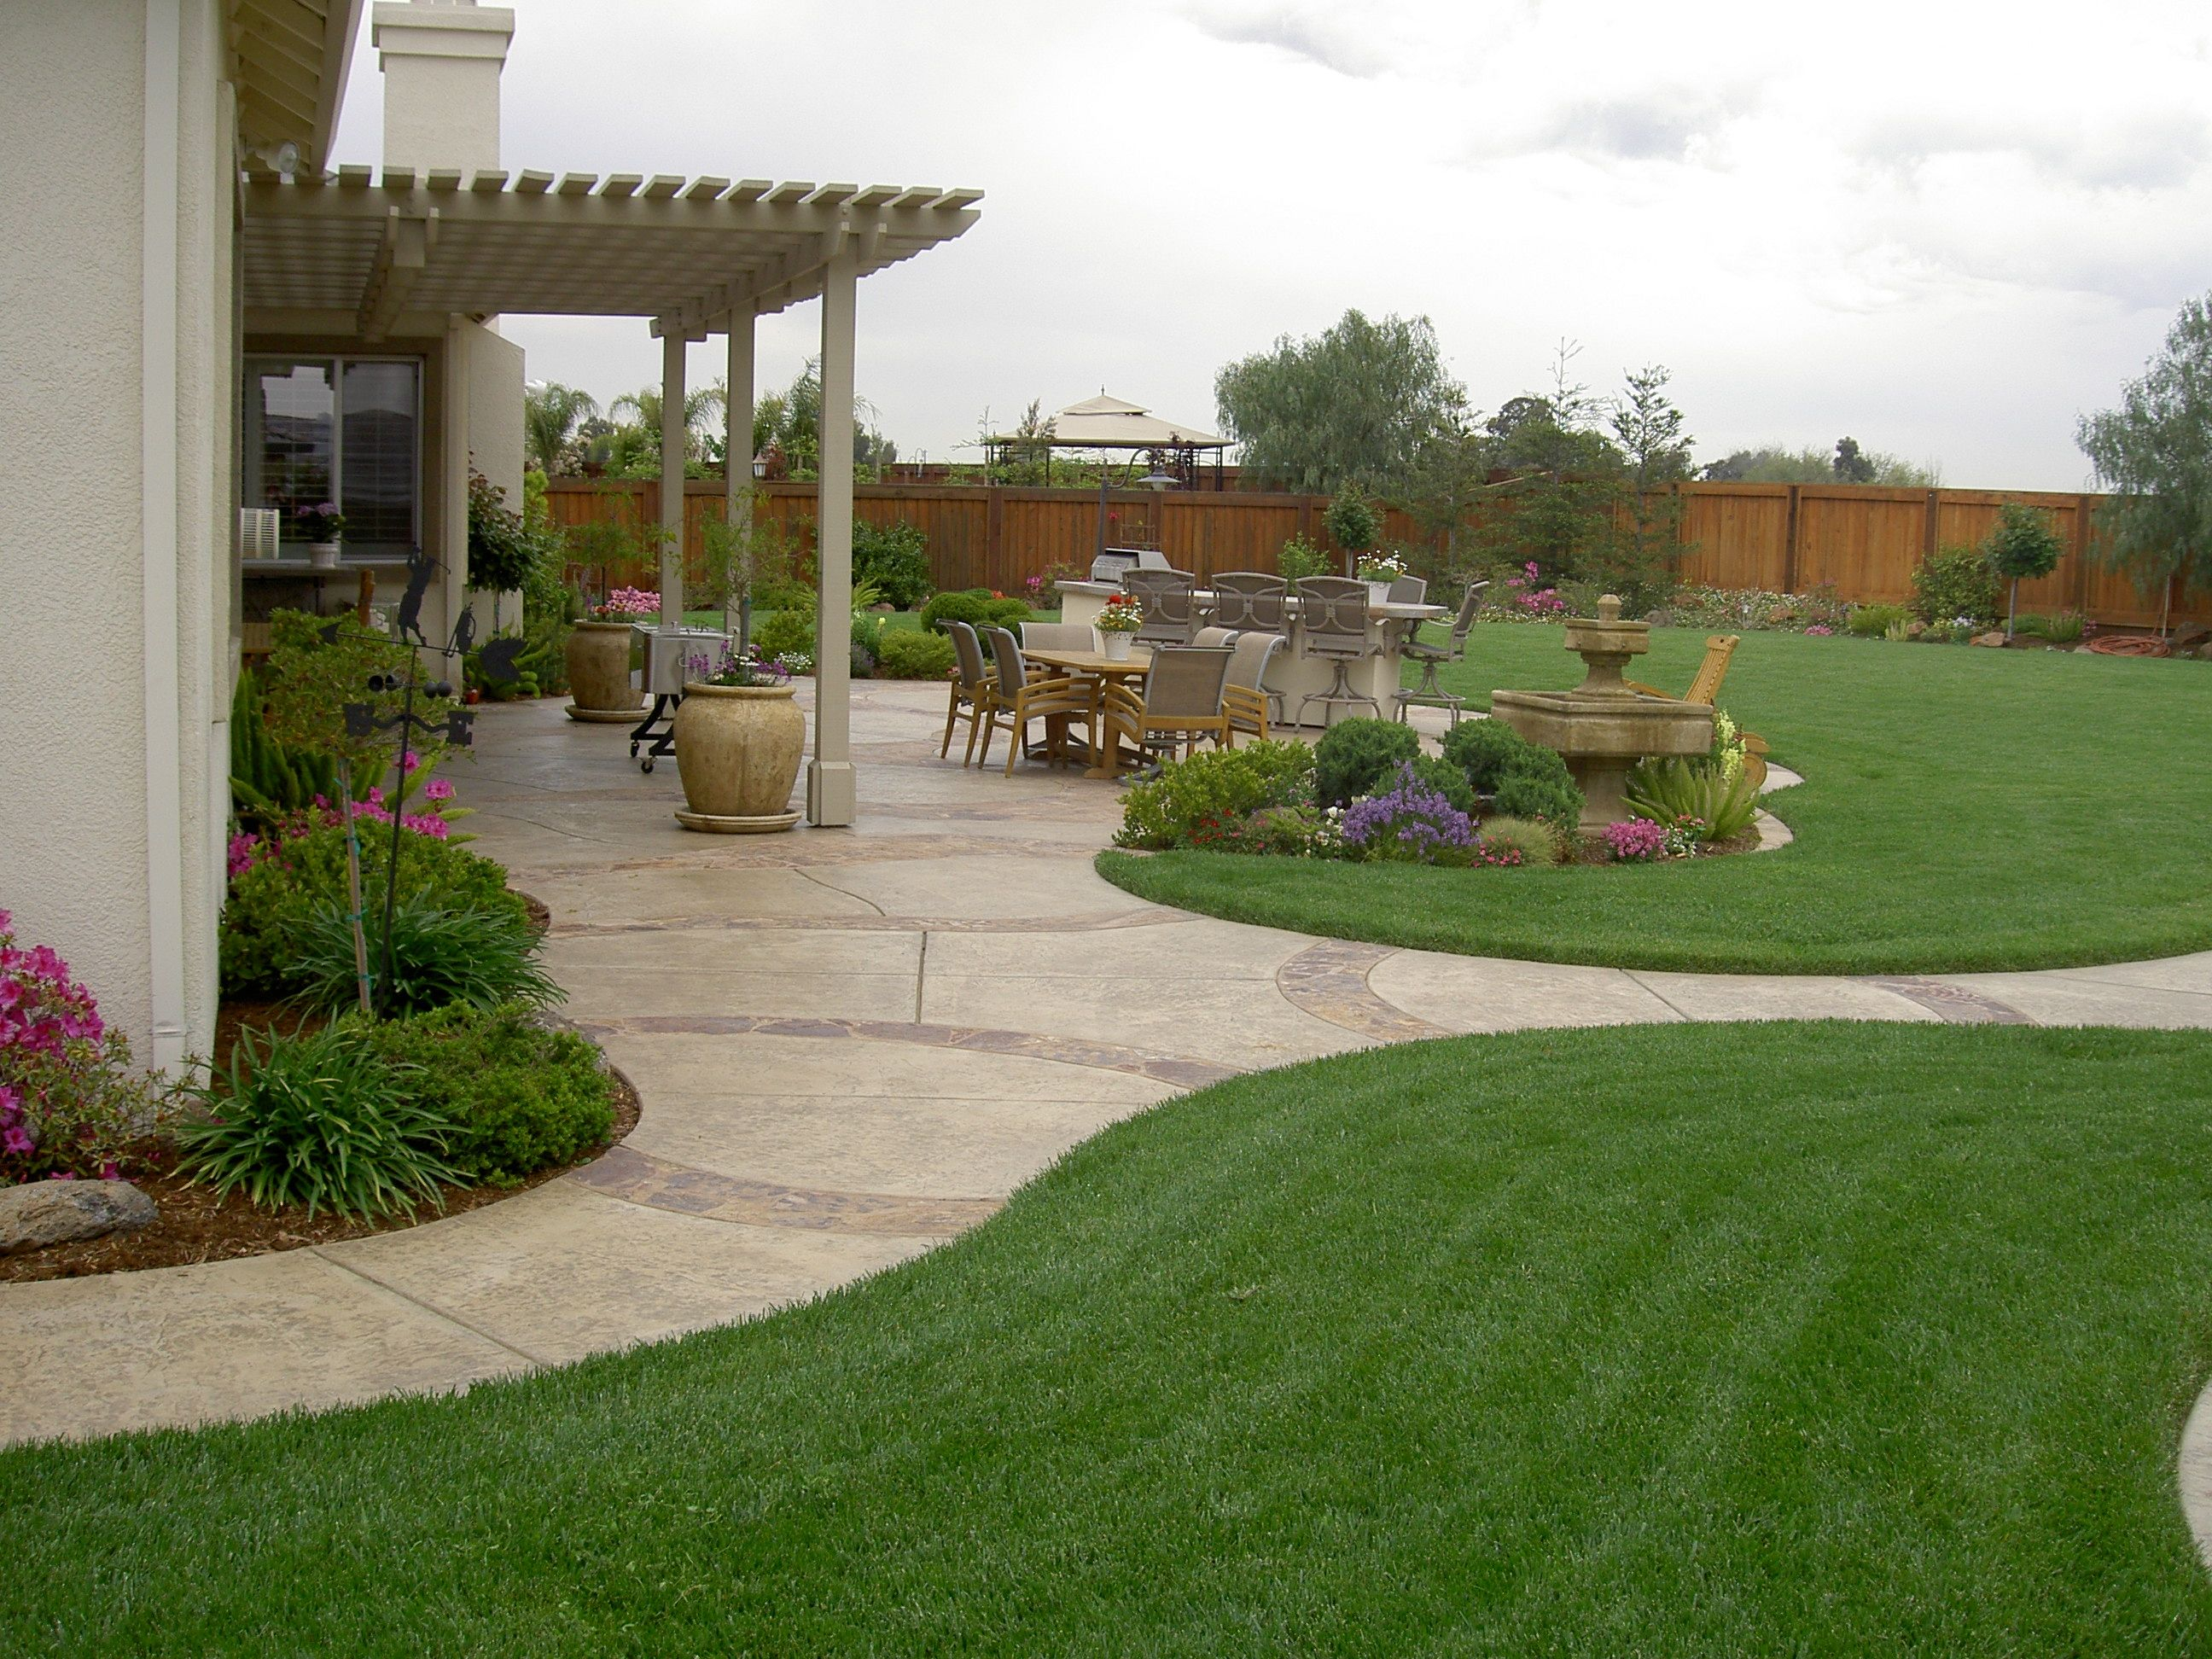 20 Awesome Landscaping Ideas For Your Backyard Gardensoutdoor inside Big Backyard Landscaping Ideas